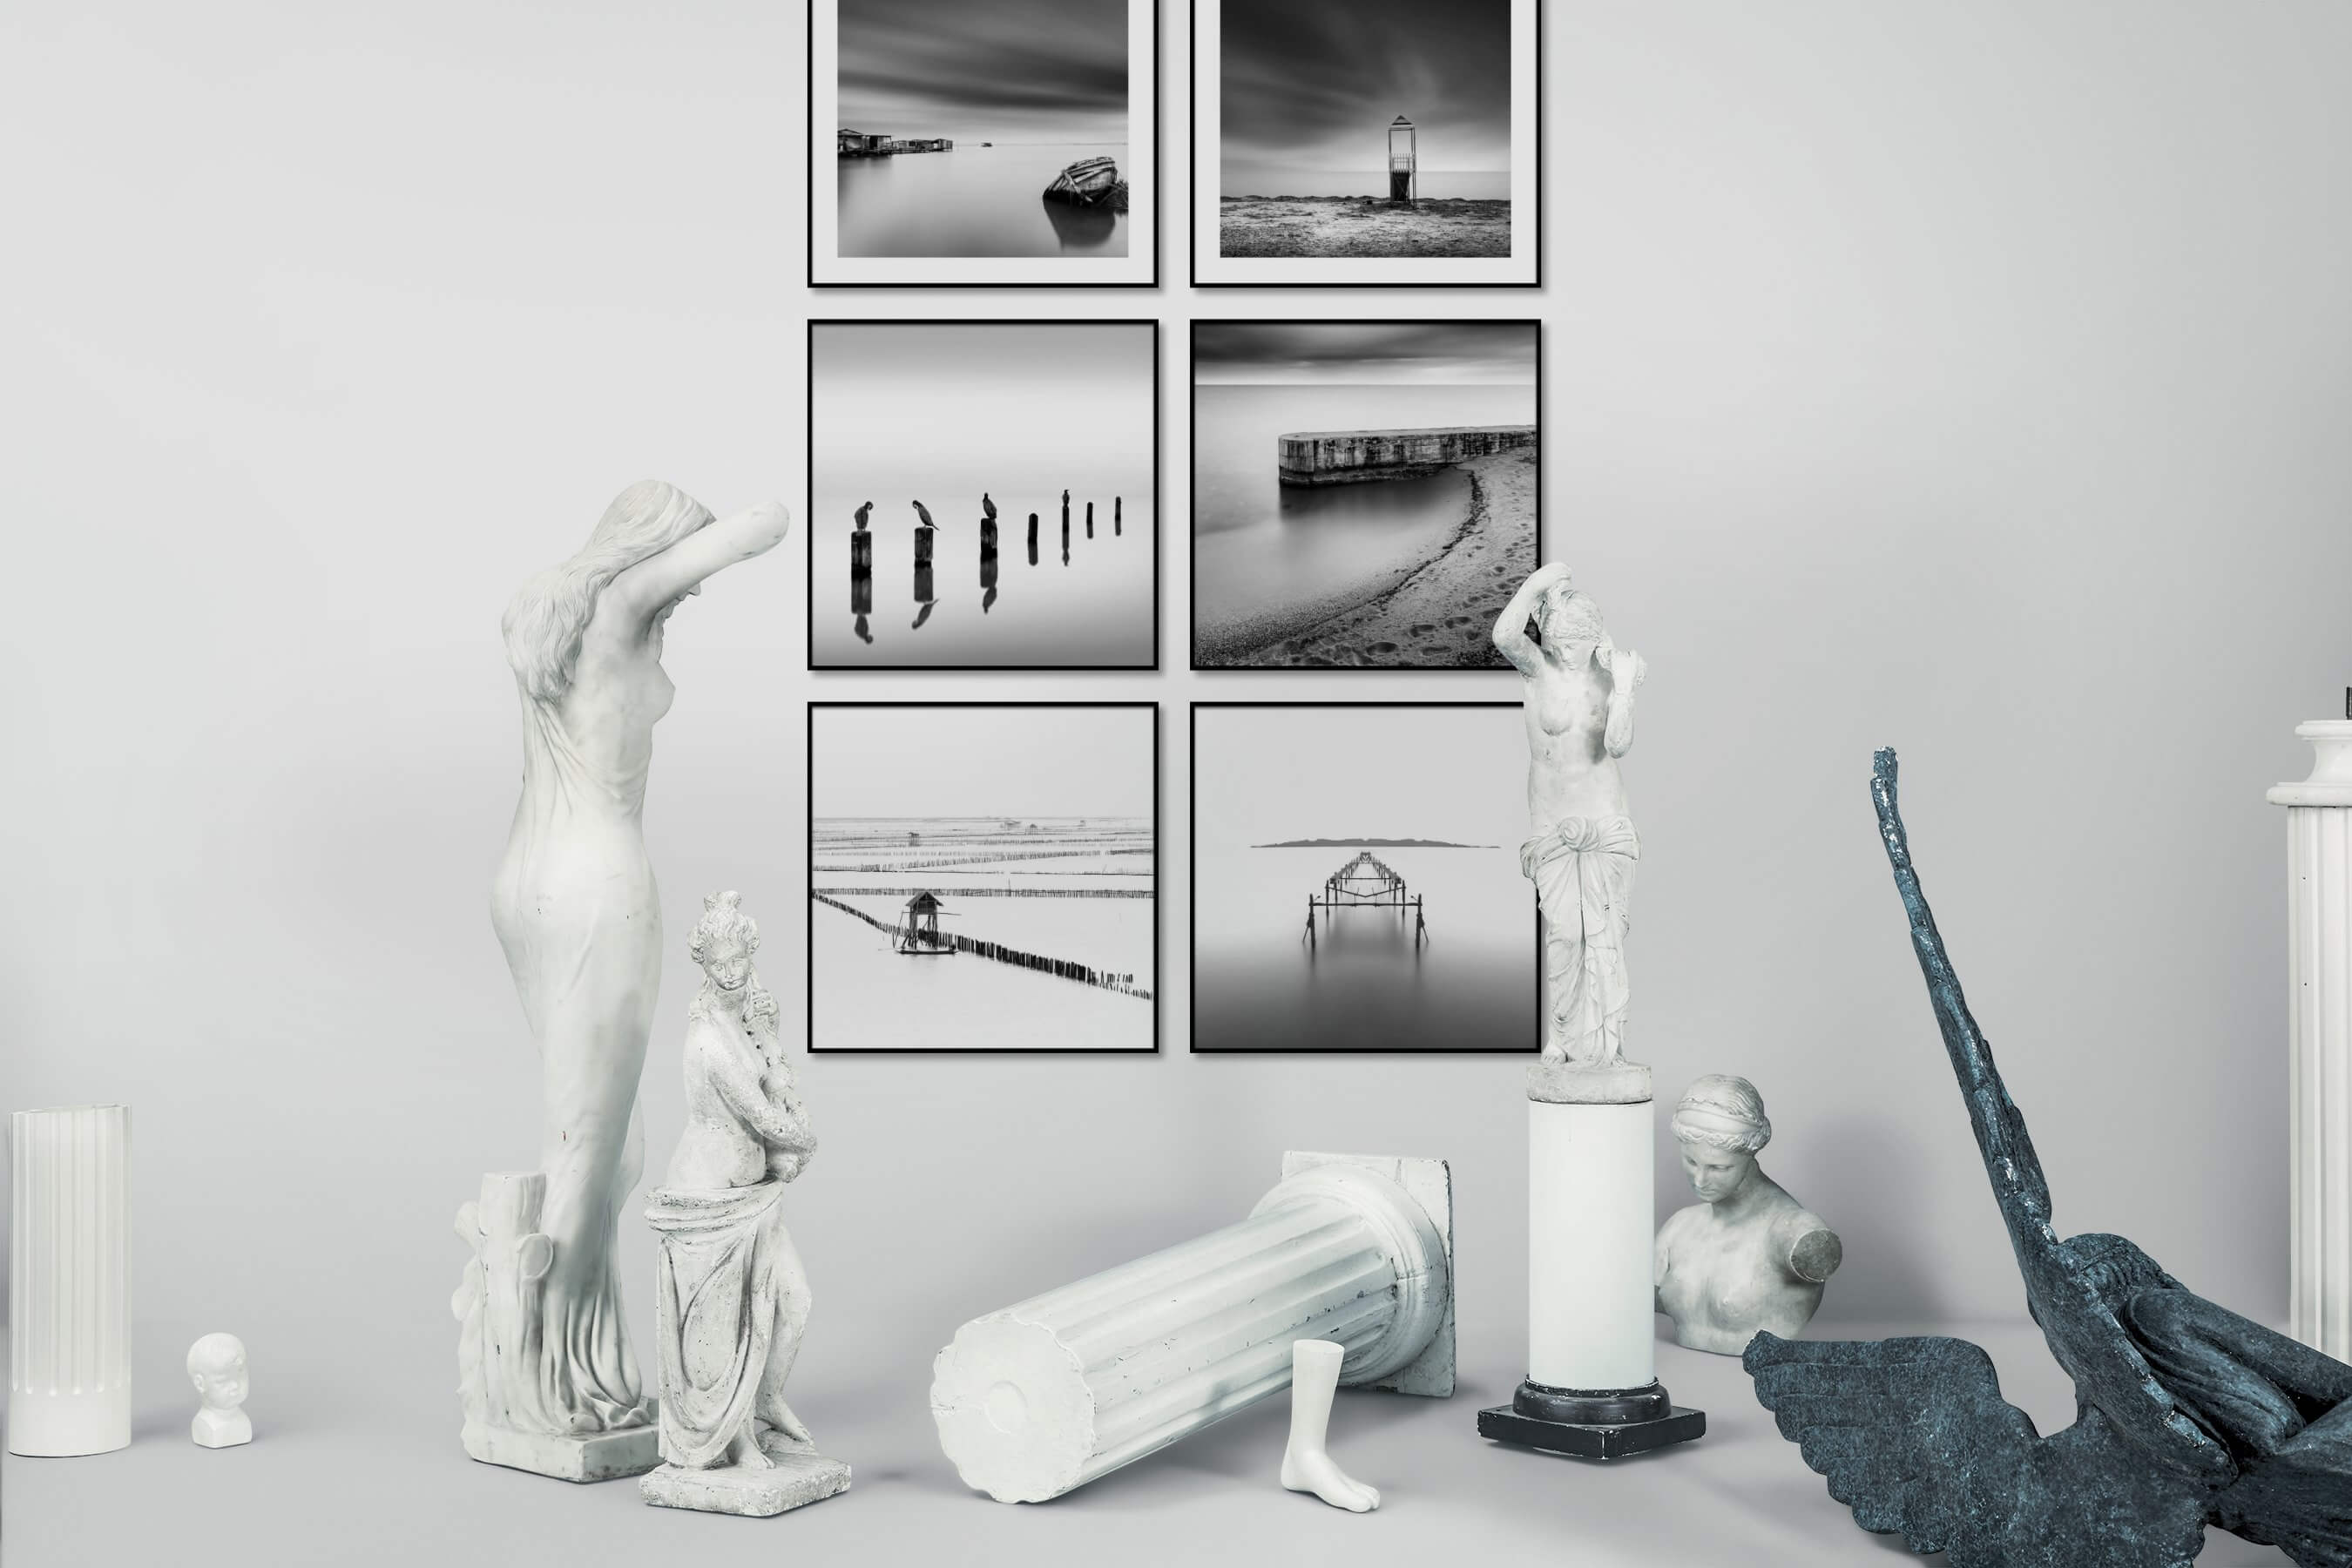 Gallery wall idea with six framed pictures arranged on a wall depicting Black & White, Beach & Water, Mindfulness, For the Minimalist, Animals, For the Moderate, Bright Tones, and Country Life